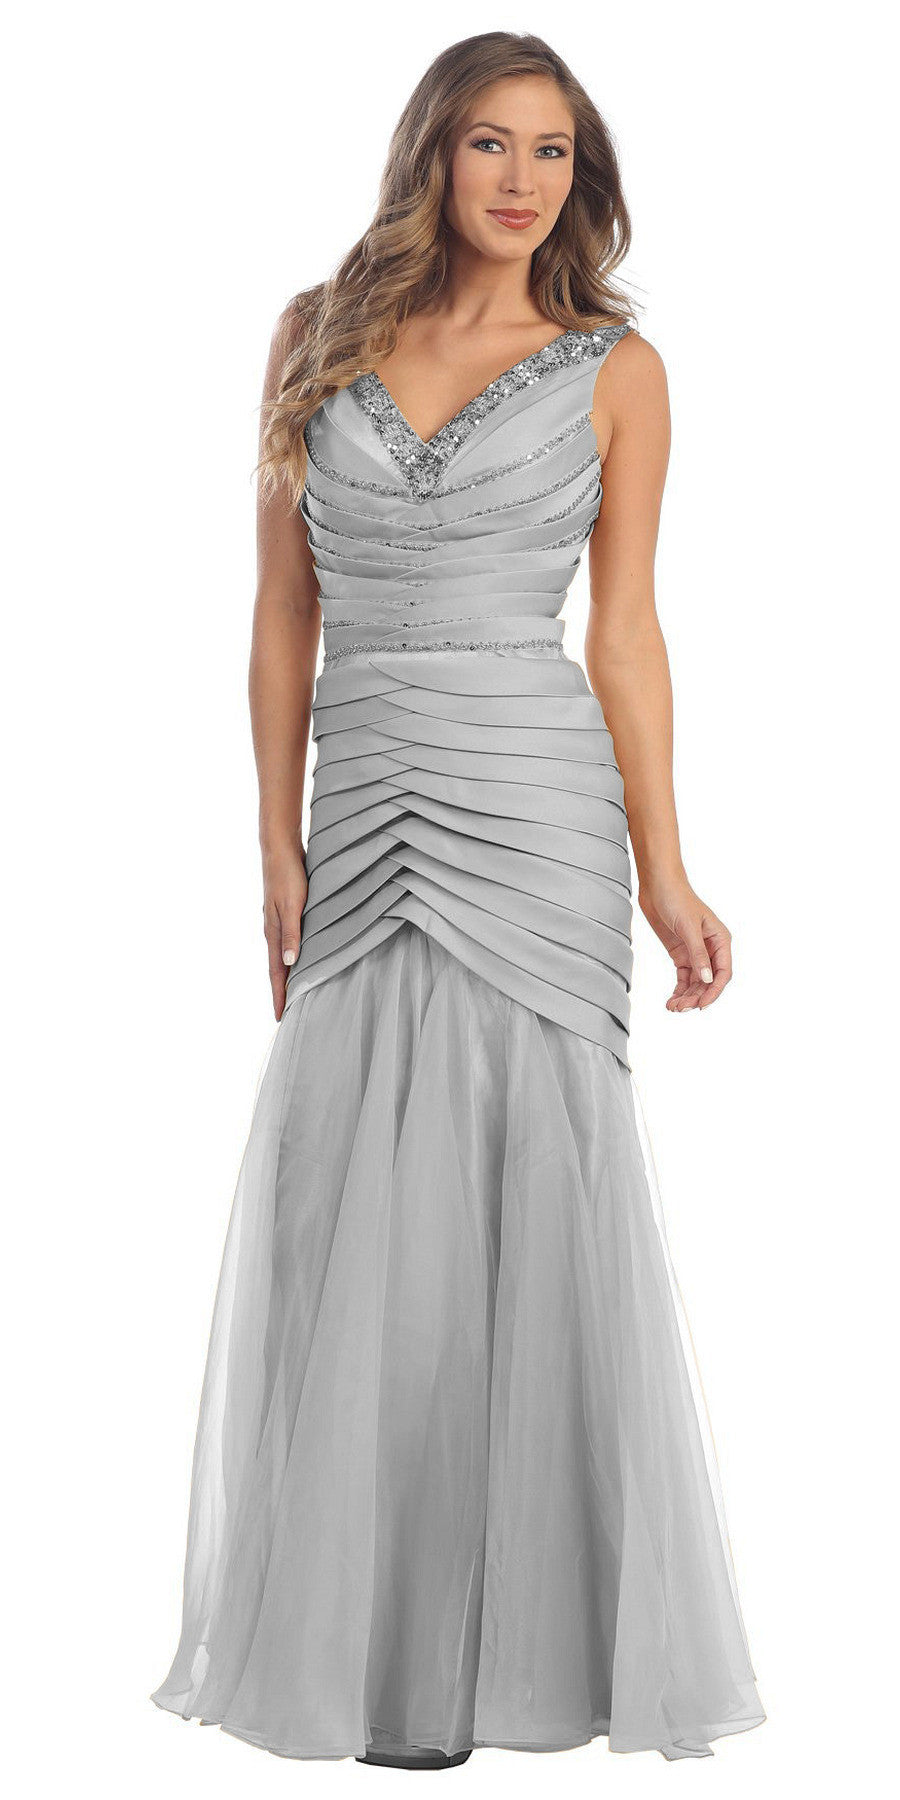 Long Formal Silver Prom Dress Mermaid V-Neck Flare Satin Chiffon